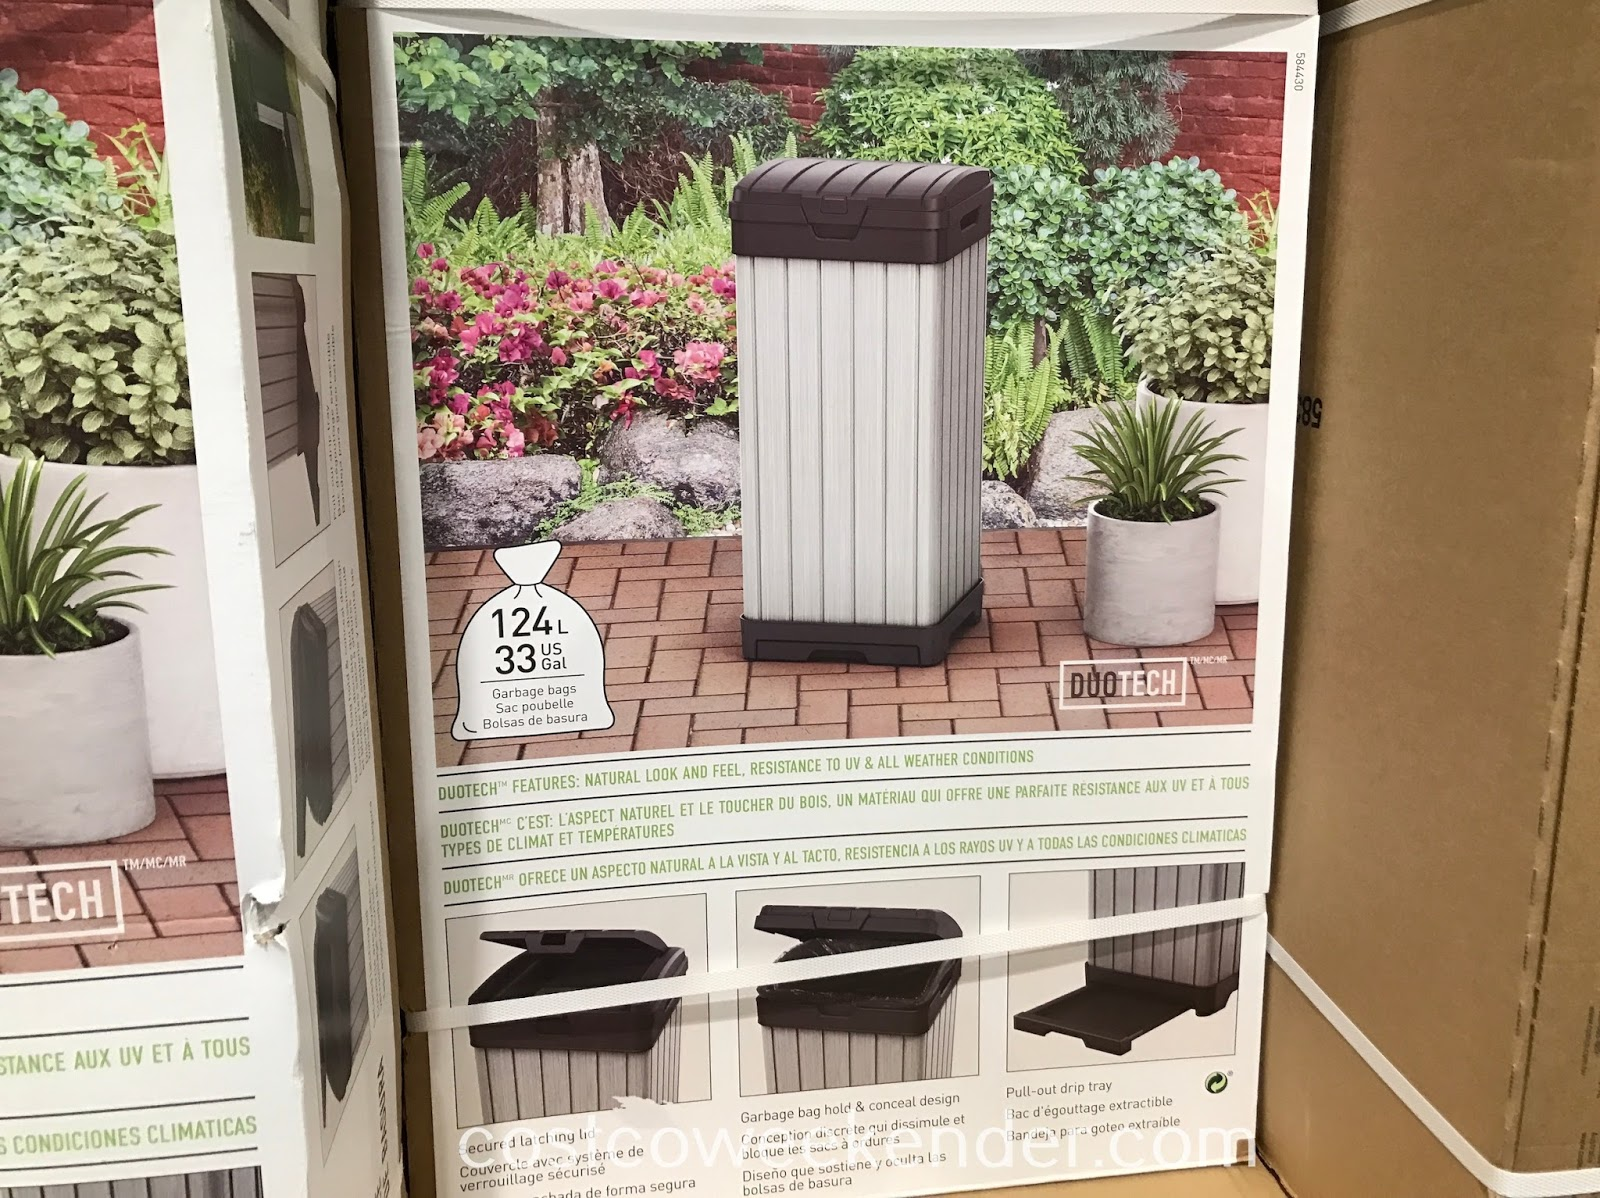 Keep unsightly garbage out of sight and out of mind with the Keter Outdoor Waste Bin